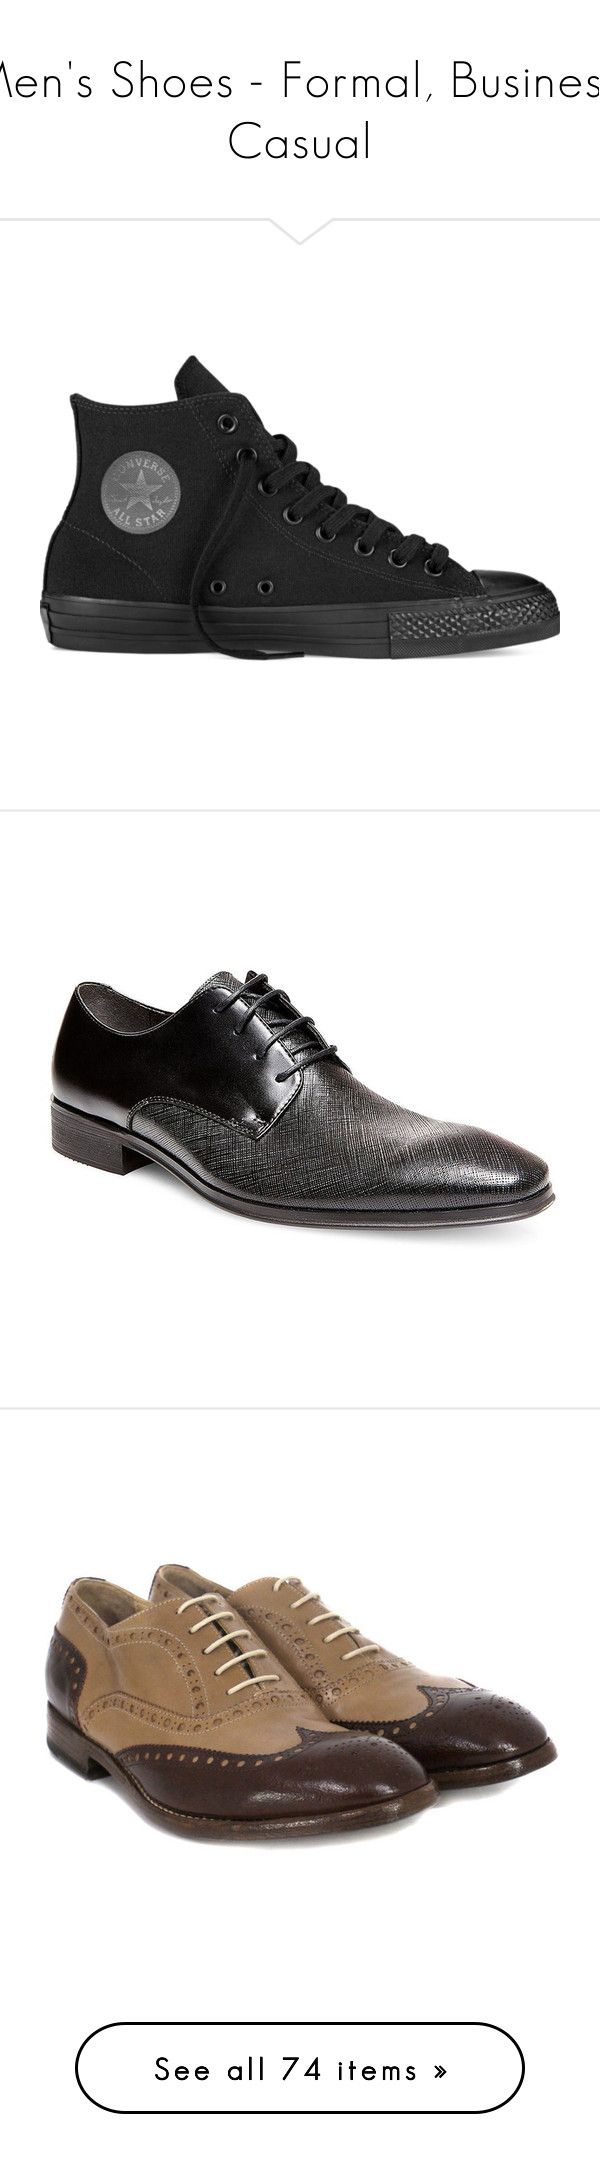 """""""Men's Shoes - Formal, Business, Casual"""" by servayne ❤ liked on Polyvore featuring shoes, sneakers, converse, black, hi tops, converse shoes, converse trainers, black hi top sneakers, high top trainers e men's fashion"""